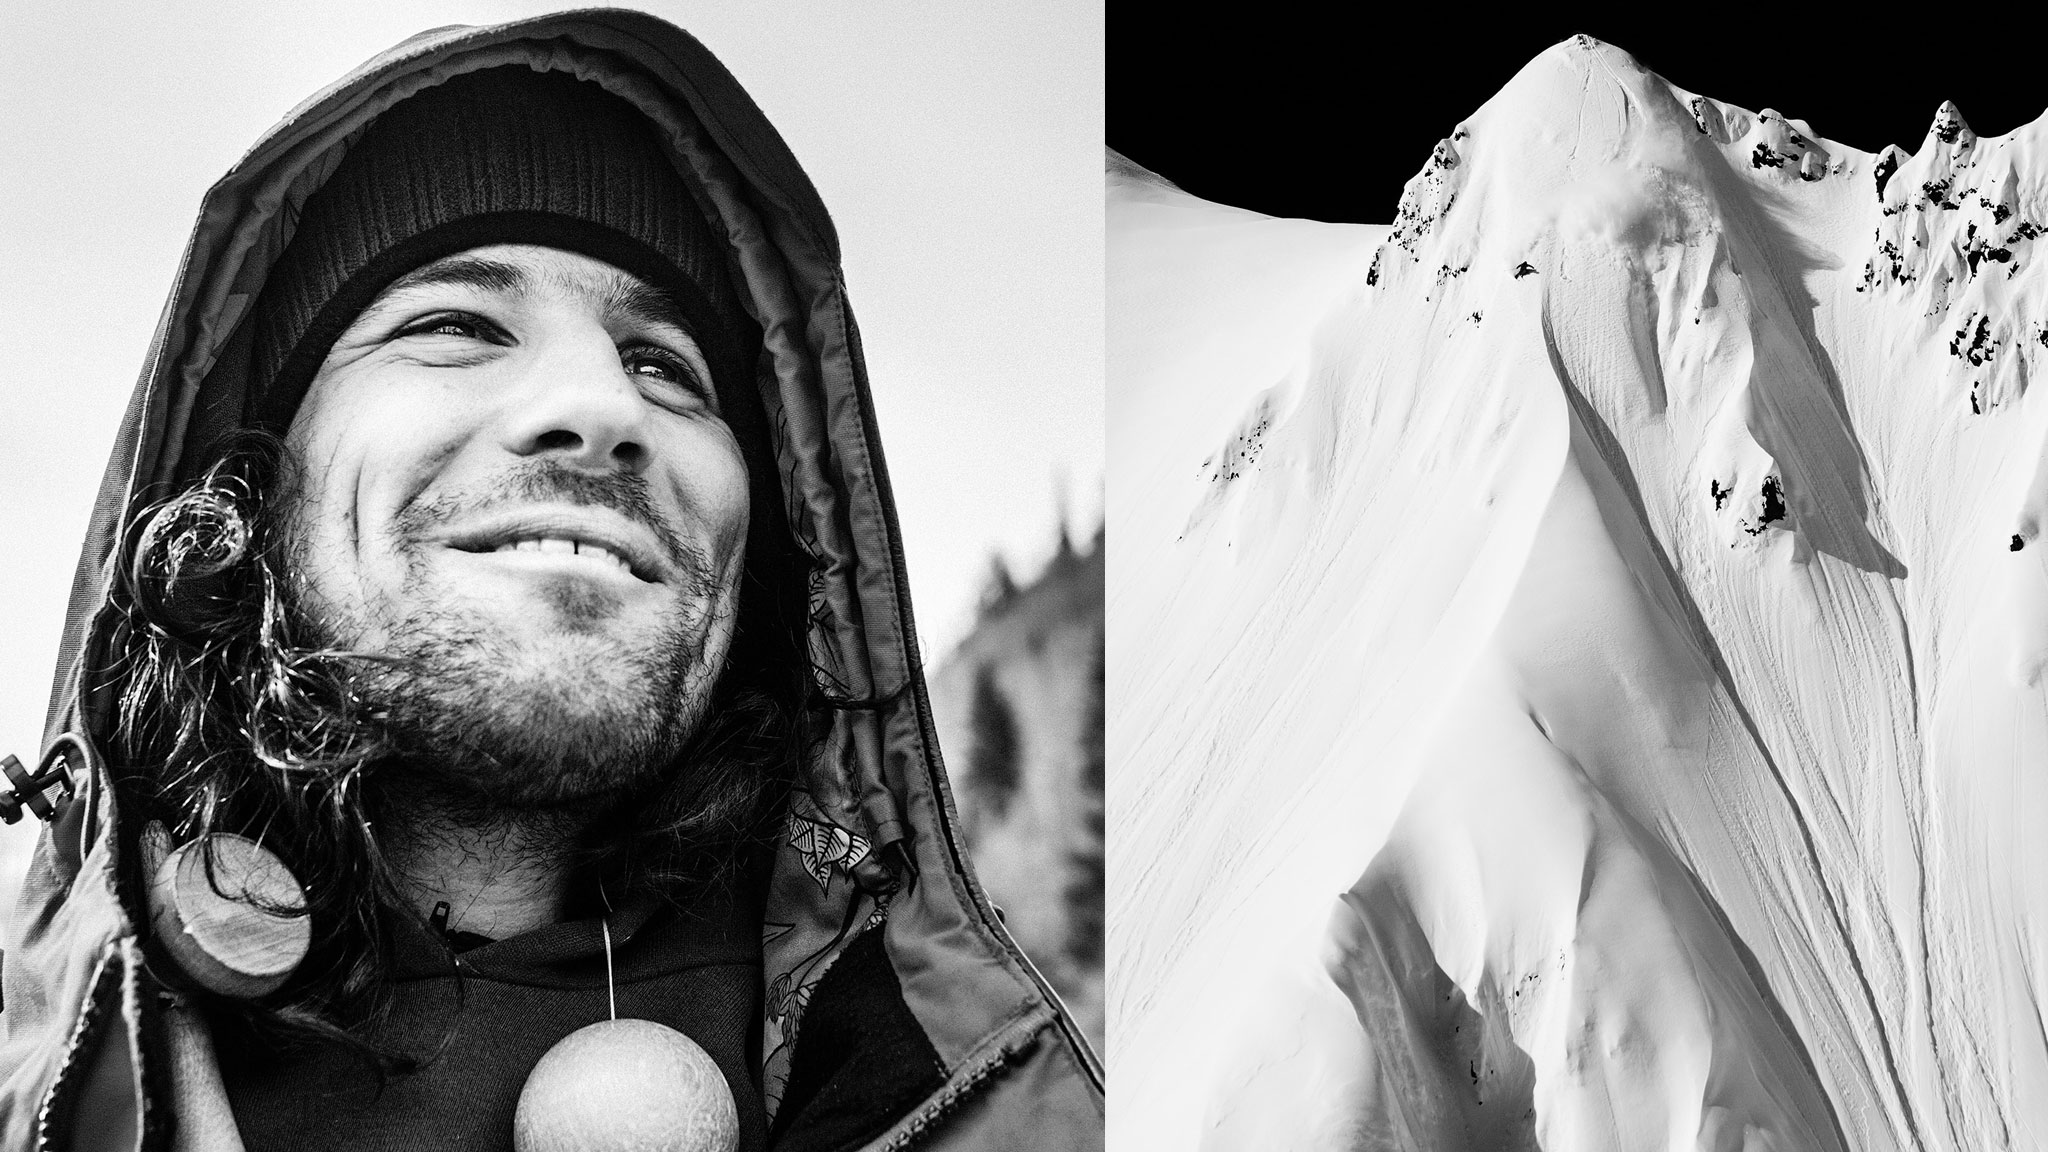 JP Auclair, who died Monday in an avalanche in Chile, was one of skiing's most creative minds.